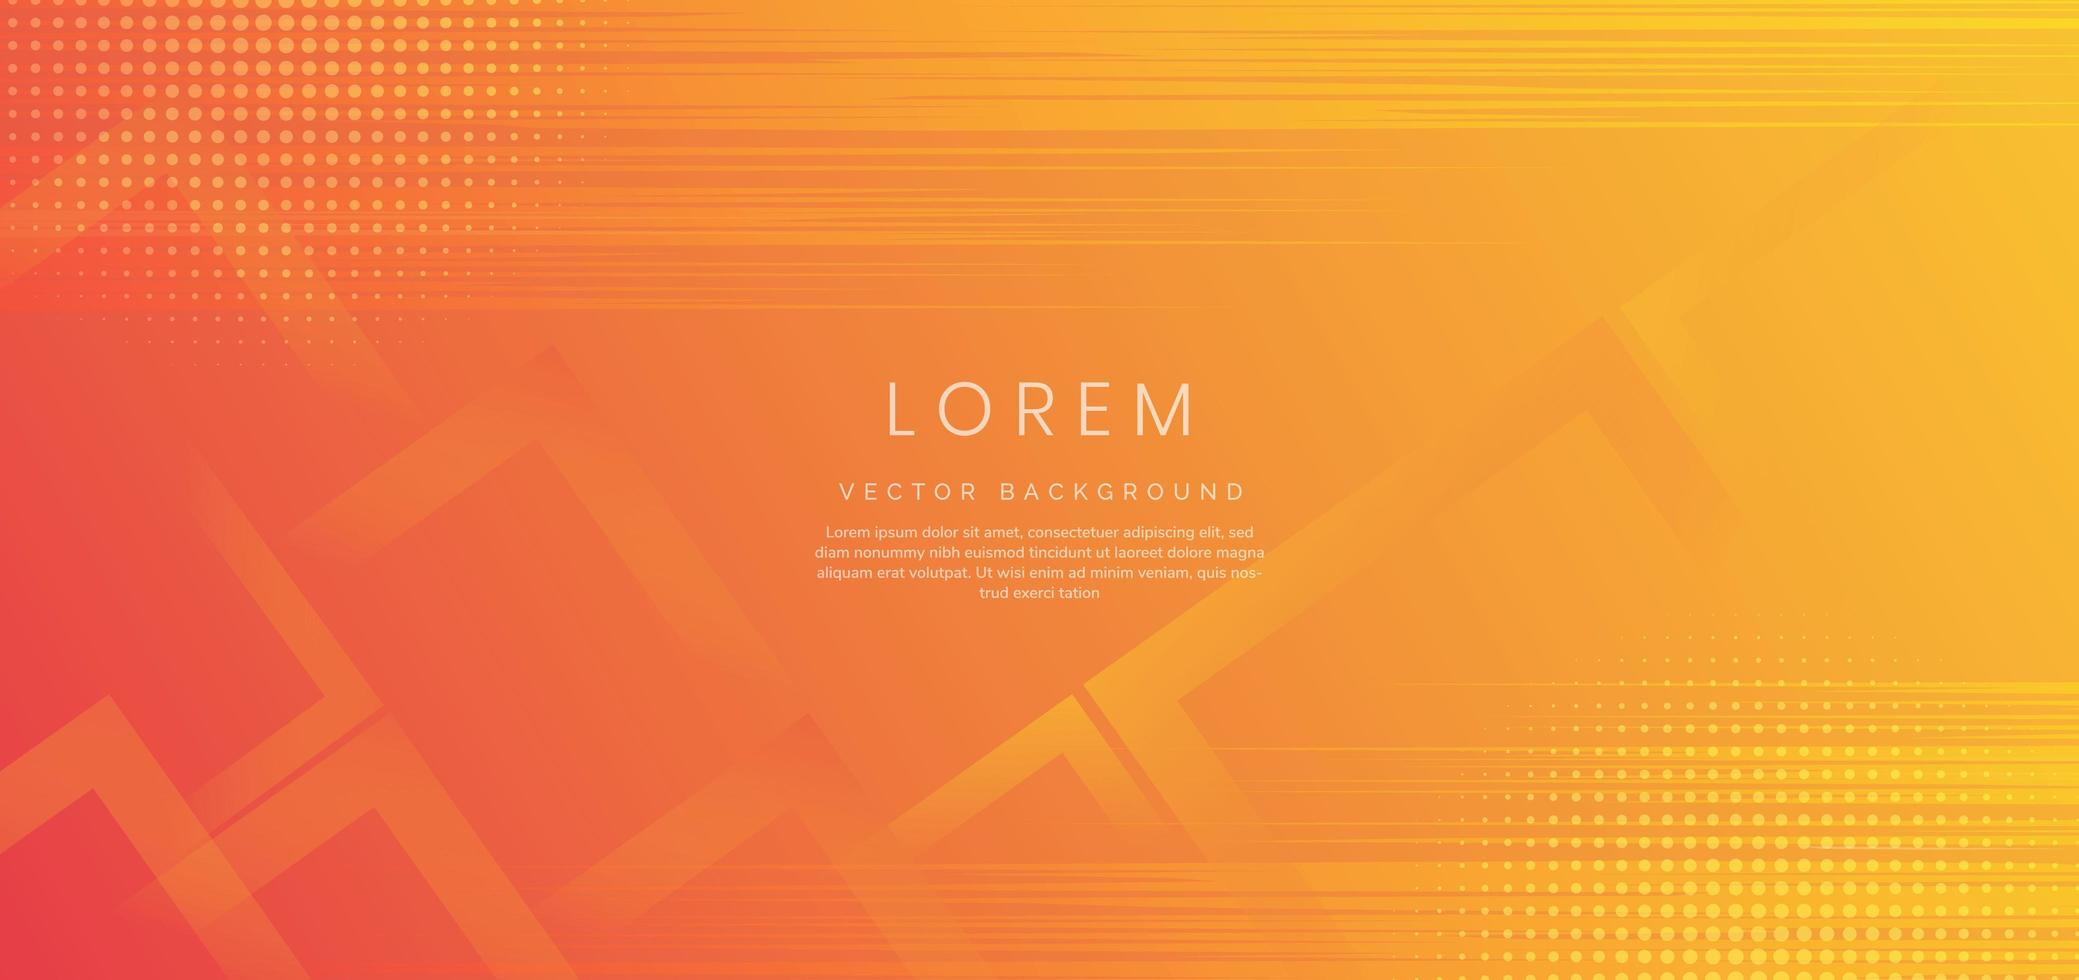 Abstract banner web template design background yellowy and orange. vector